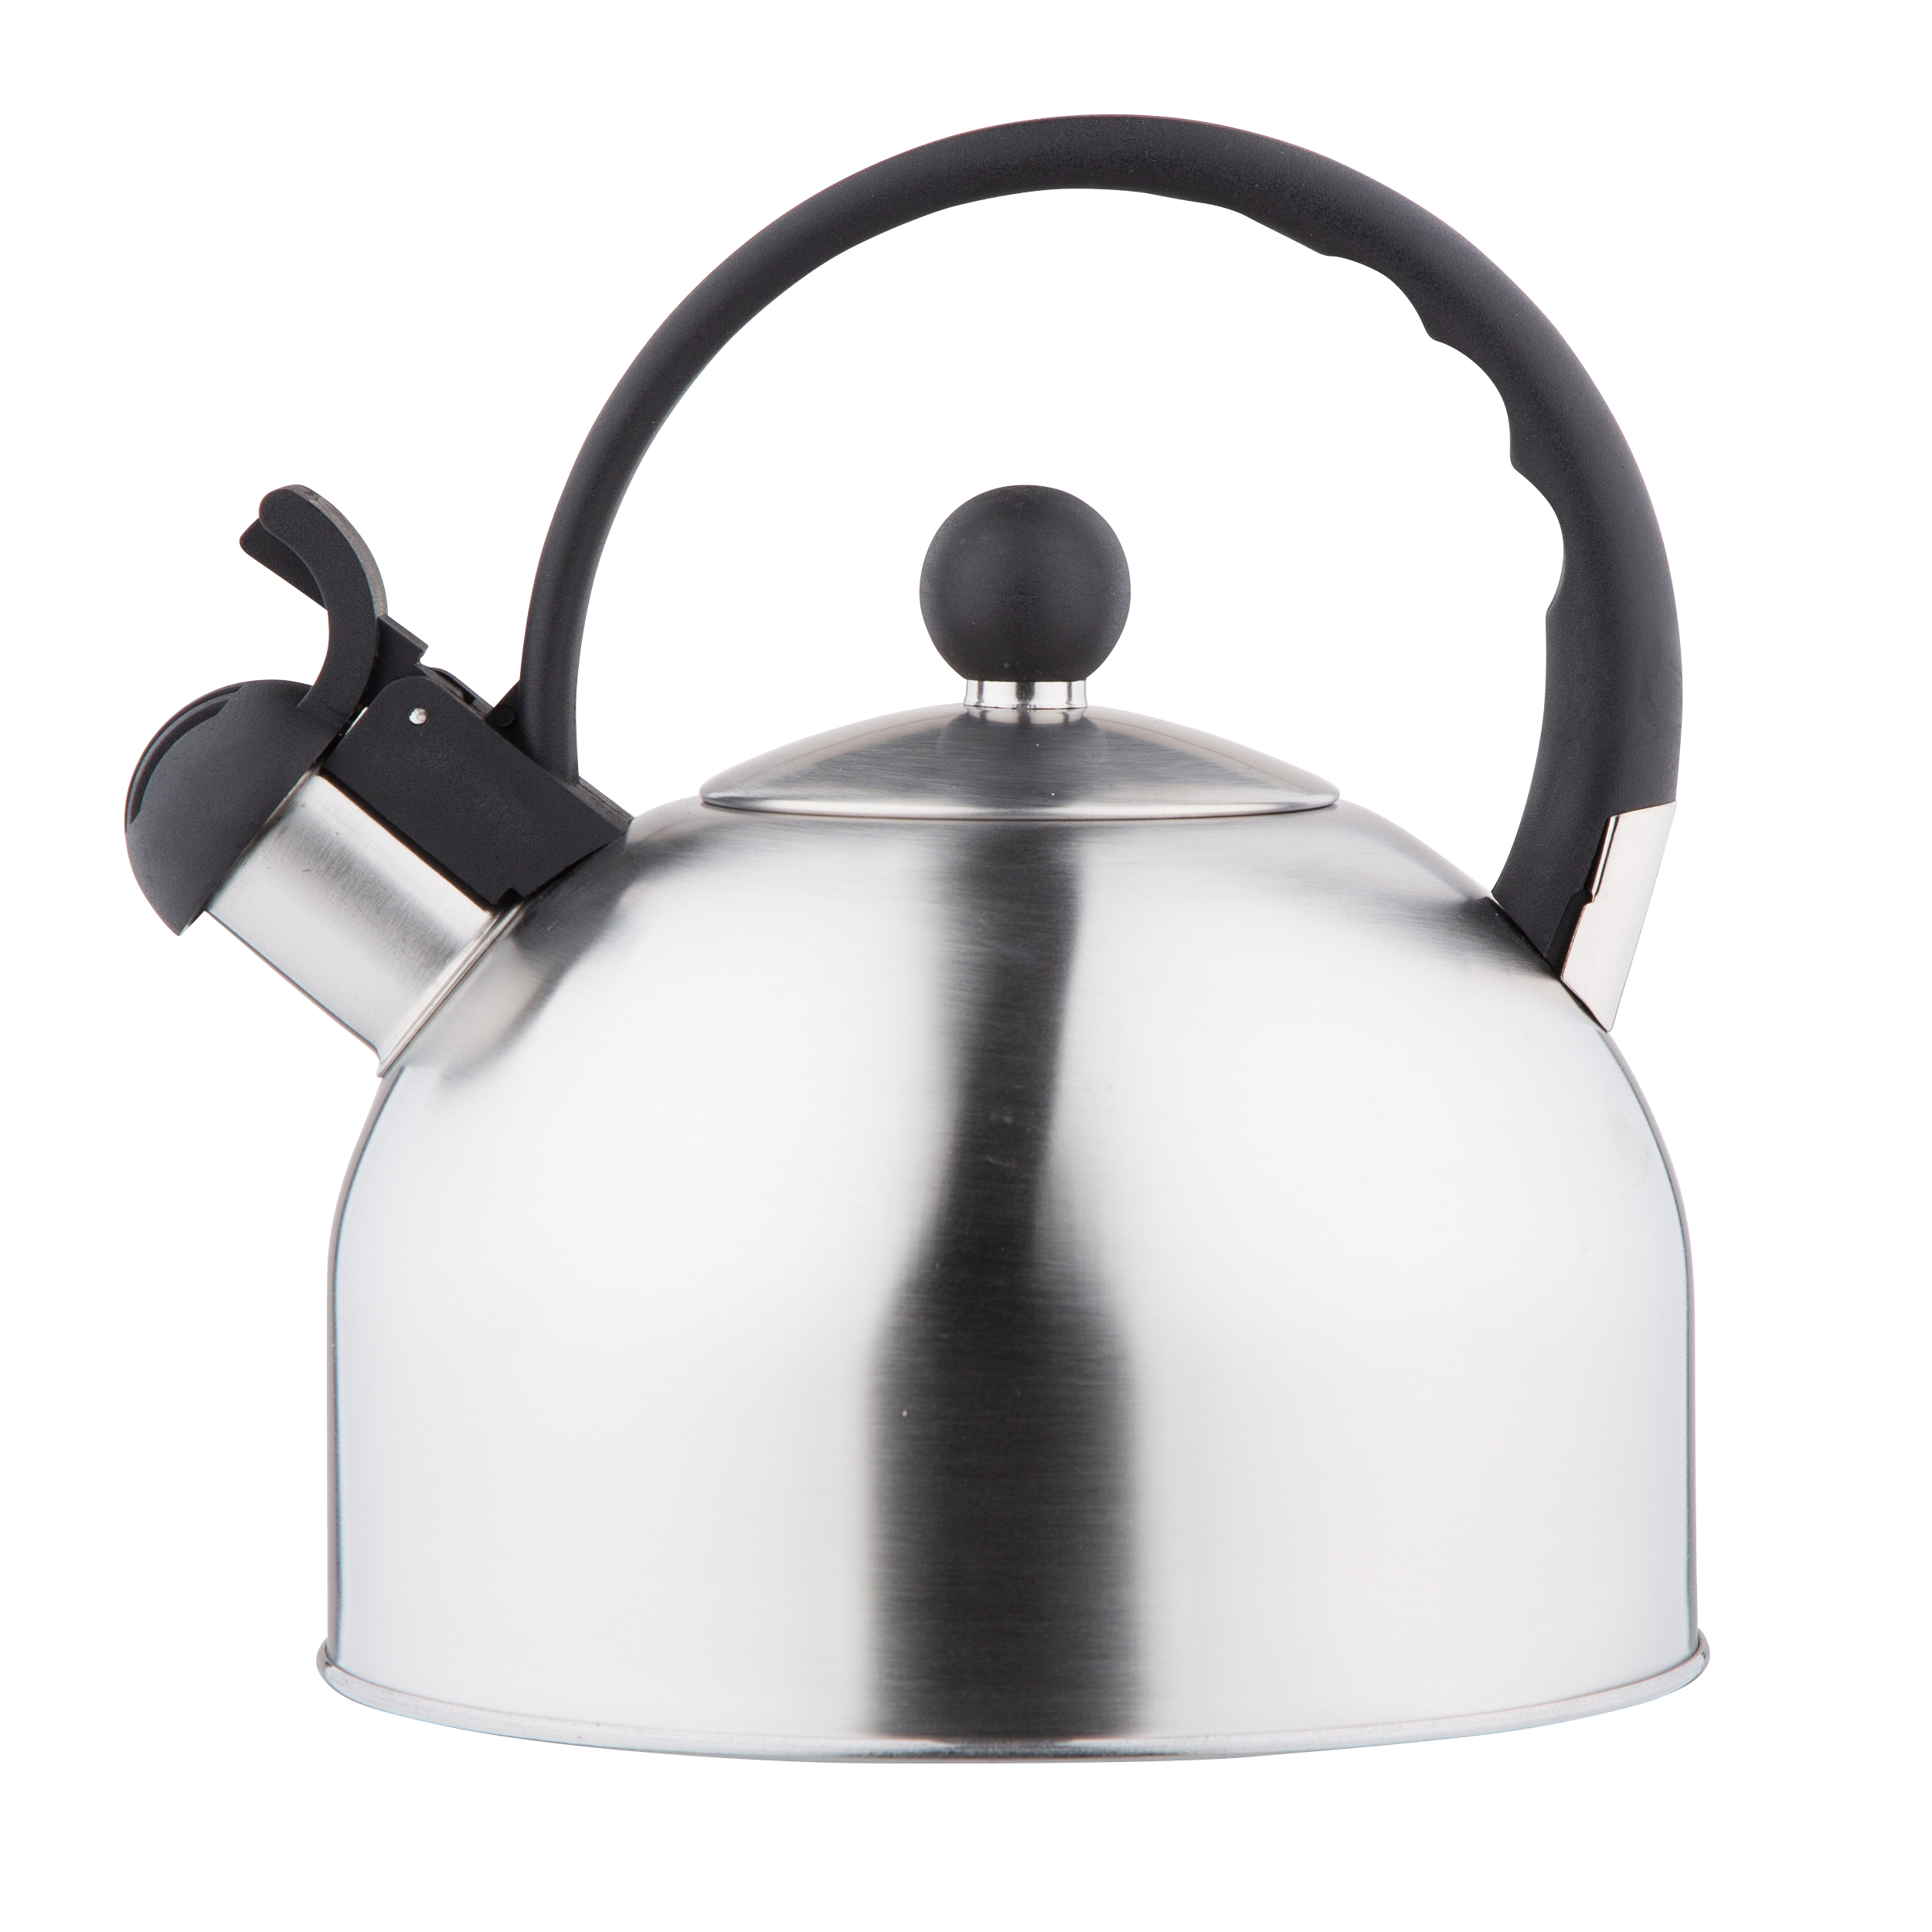 Stainless steel whistling kettle Daily satin 2,5l.